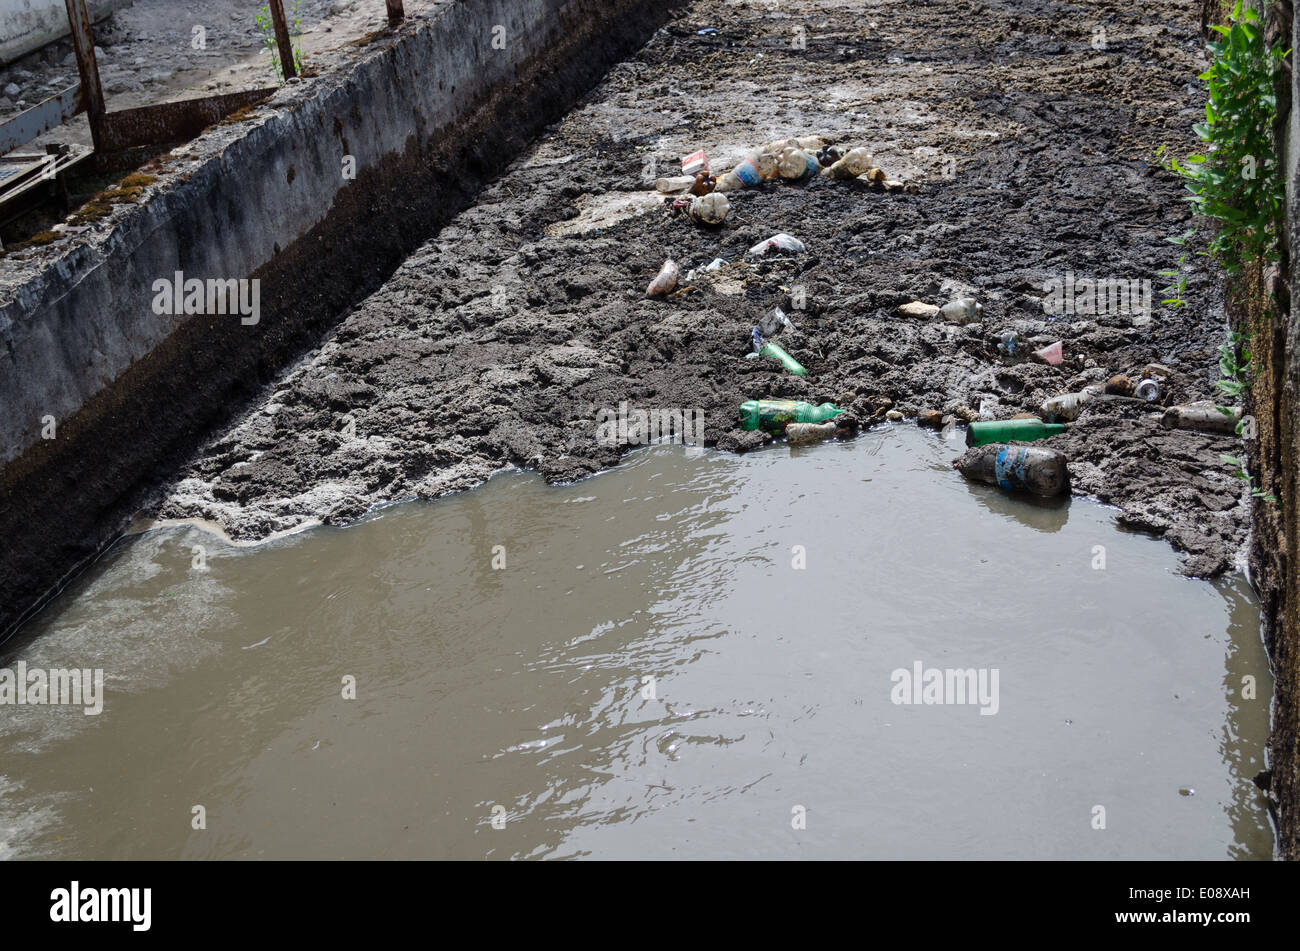 City Waste Water Garbage Flow Stock Photos Amp City Waste Water Garbage Flow Stock Images